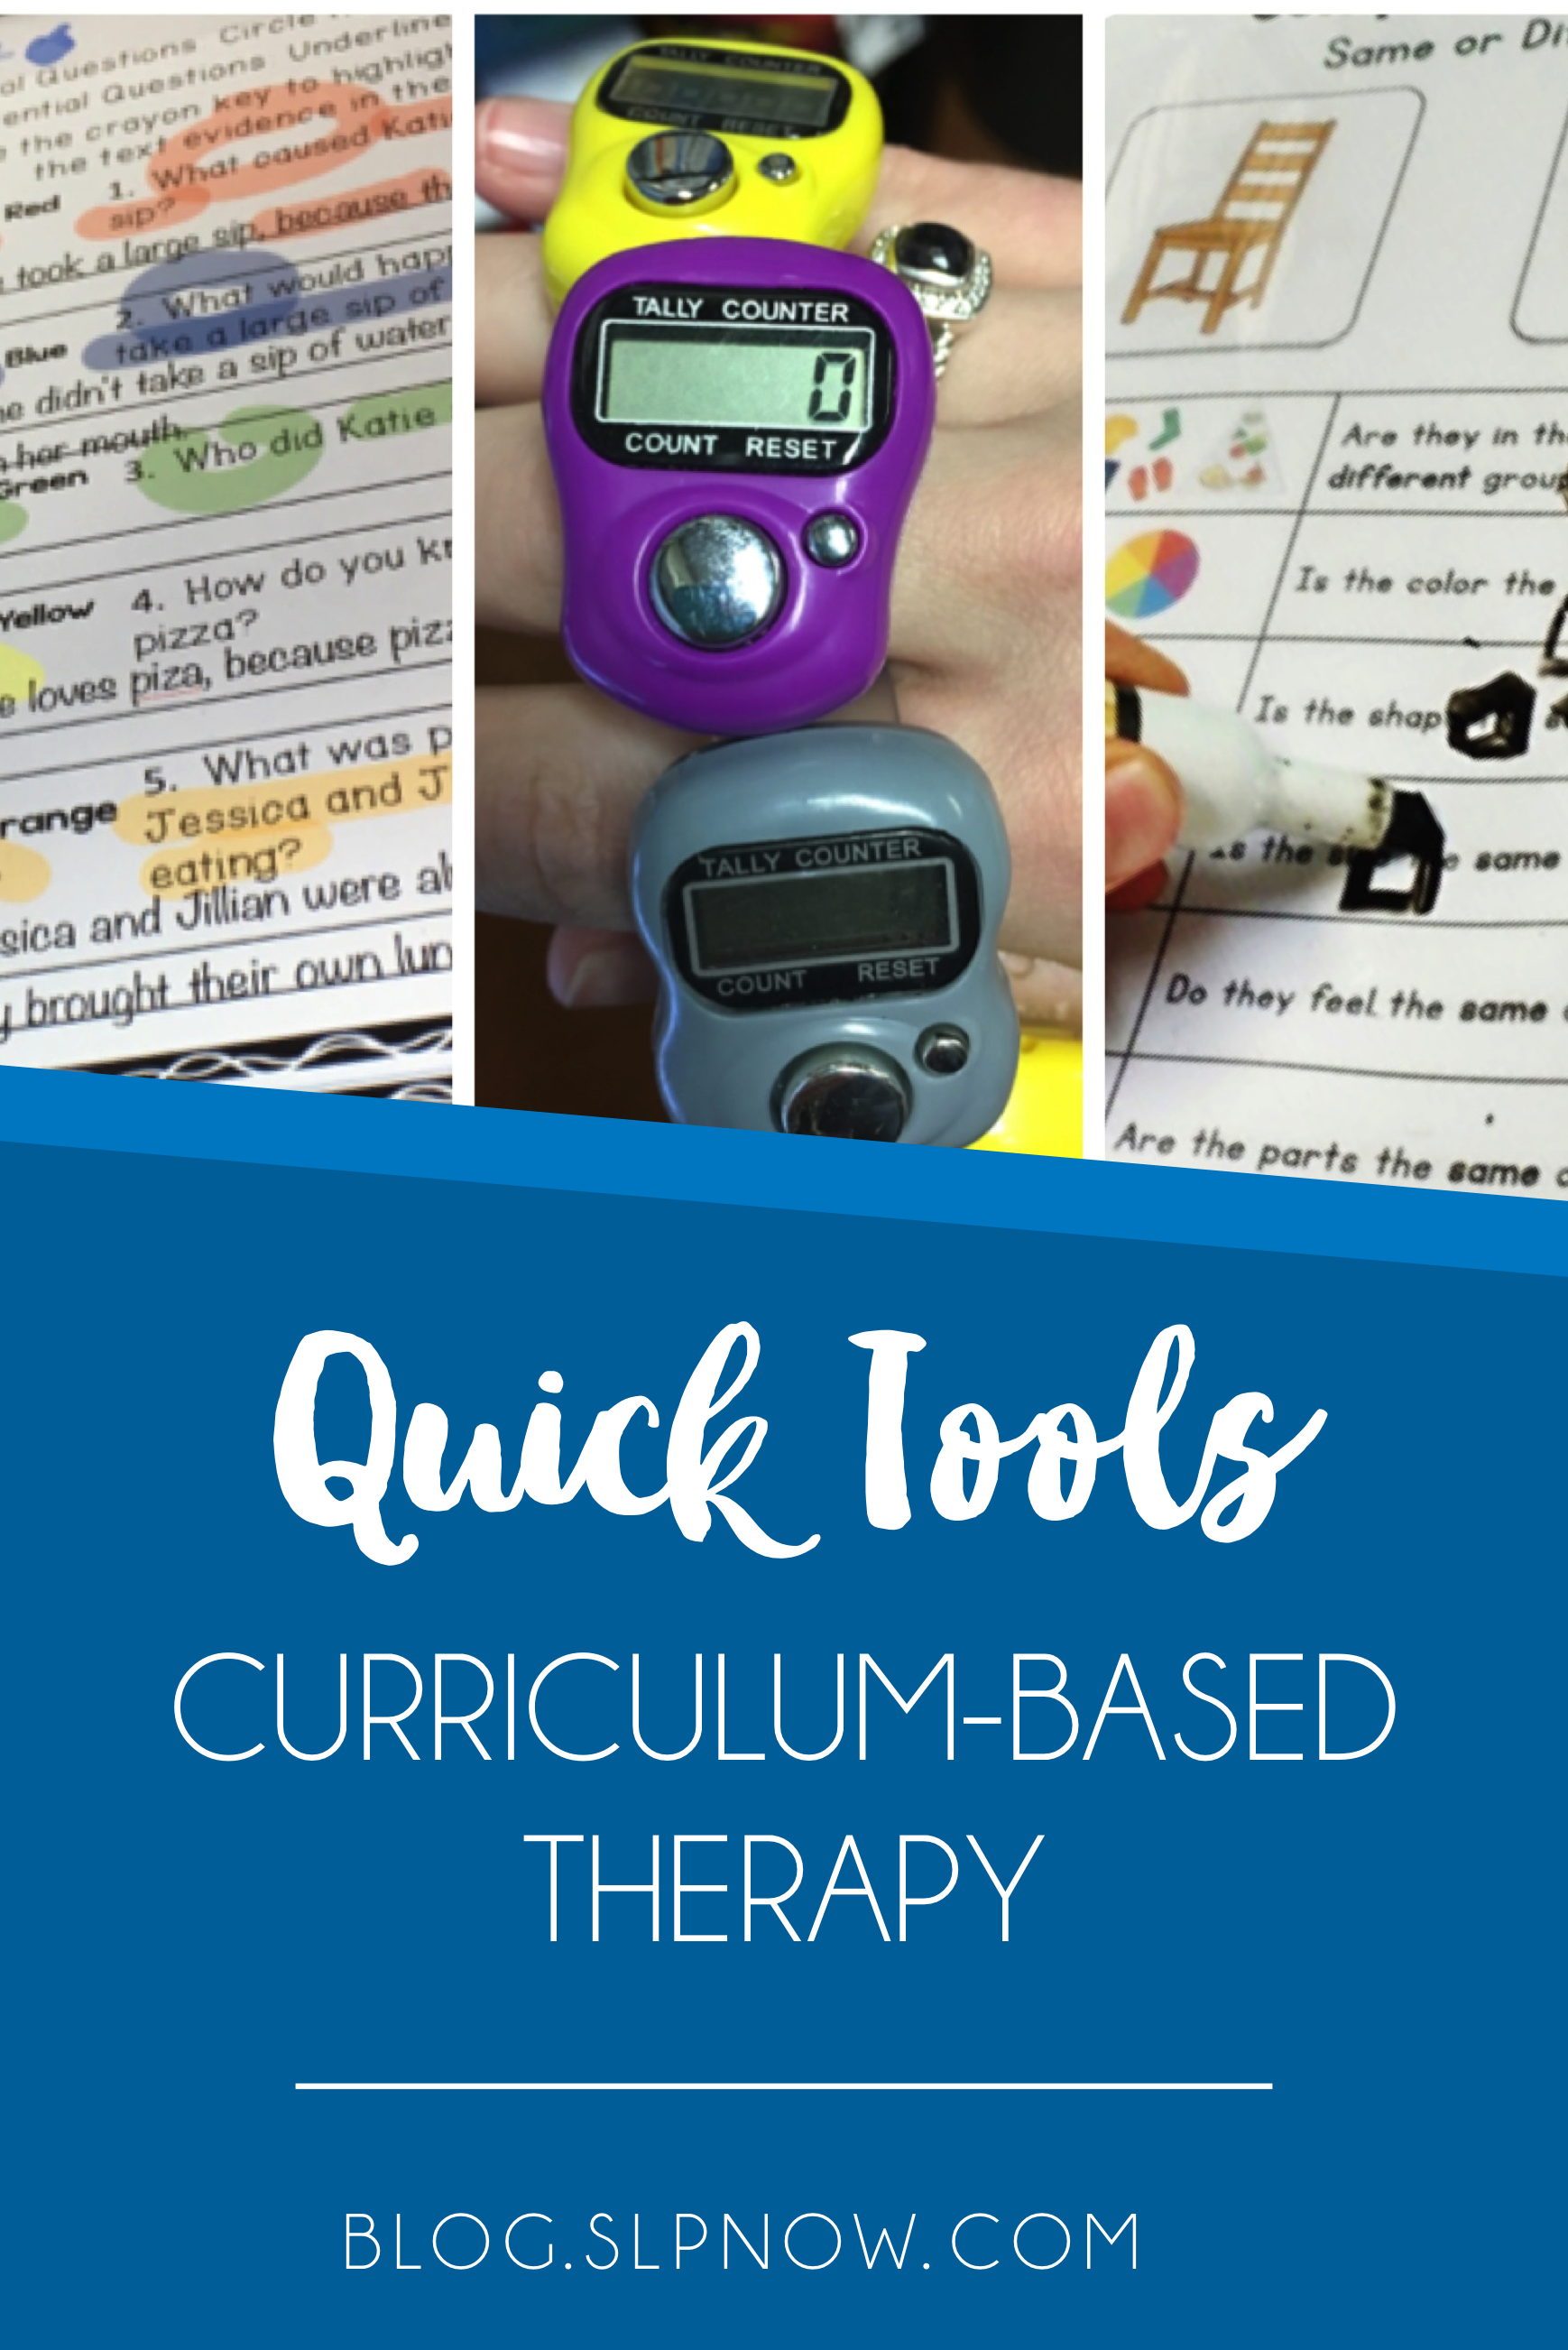 There's been a push lately toward curriculum-based therapy, which isn't always fun - for kids or for us. That's why I've compiled this list of quick tools that you can use in speech therapy to make it more fun and engaging for the kids. Click through to see my recommendations!